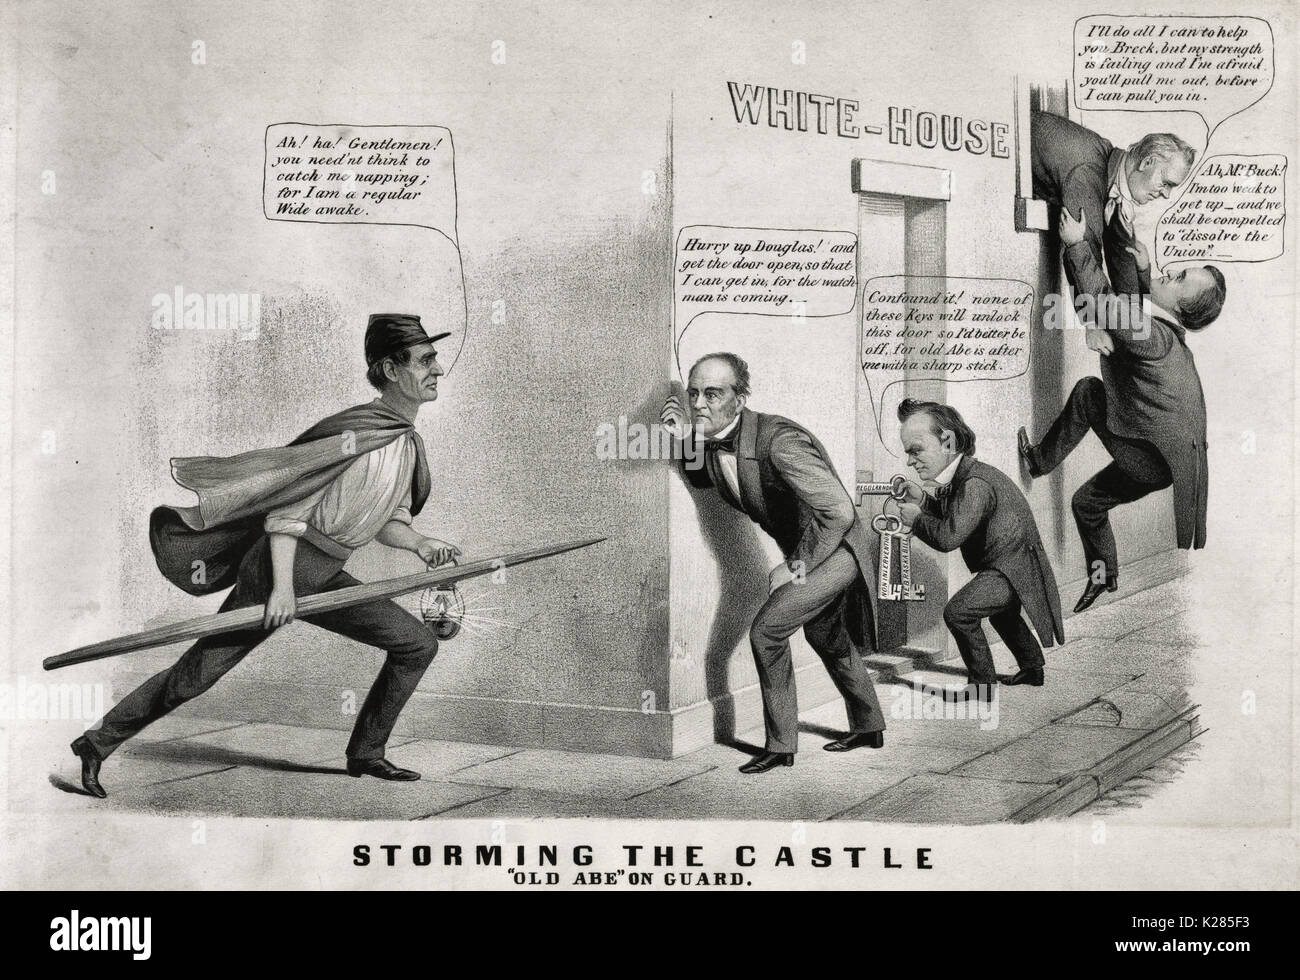 Storming the castle. 'Old Abe' on guard - Political Cartoon, 1860. During the 1860 election campaign the 'Wide Awakes,' a marching club composed of young Republican men, appeared in cities throughout the North.  They often wore uniforms consisting of visored caps and short capes, and carried lanterns. Here Republican presidential candidate Abraham Lincoln (left) is dressed as a 'Wide-Awake,' and carries a lantern and a spear-like wooden rail. He rounds the corner of the White House foiling the attempts of three other candidates to enter surreptitiously. At far right incumbent James Buchanan tr - Stock Image